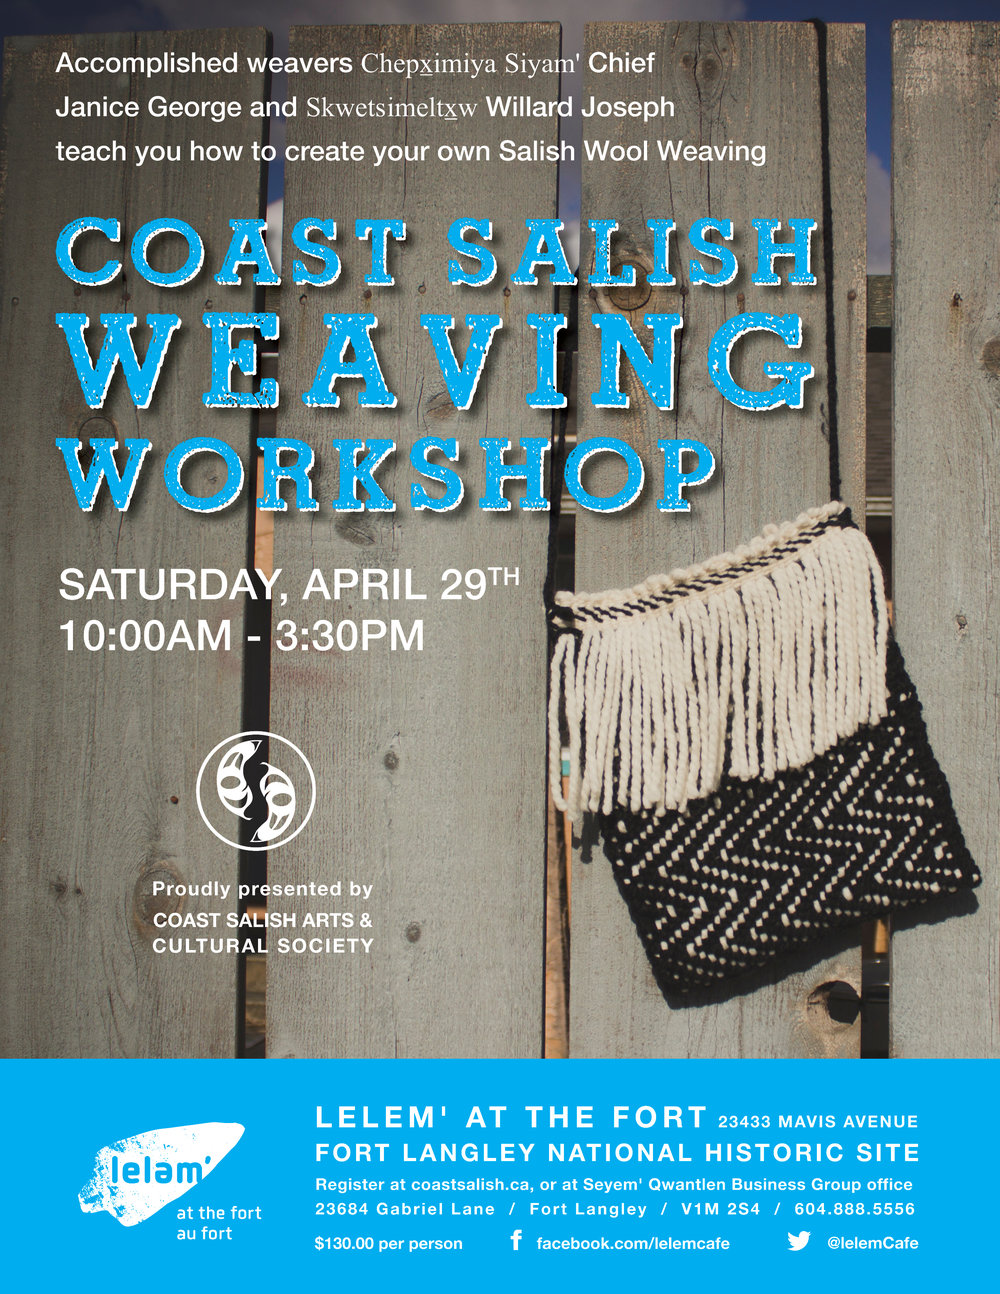 2017-03-02 Chief Janice Weaving Workshop Poster DRAFT.jpg